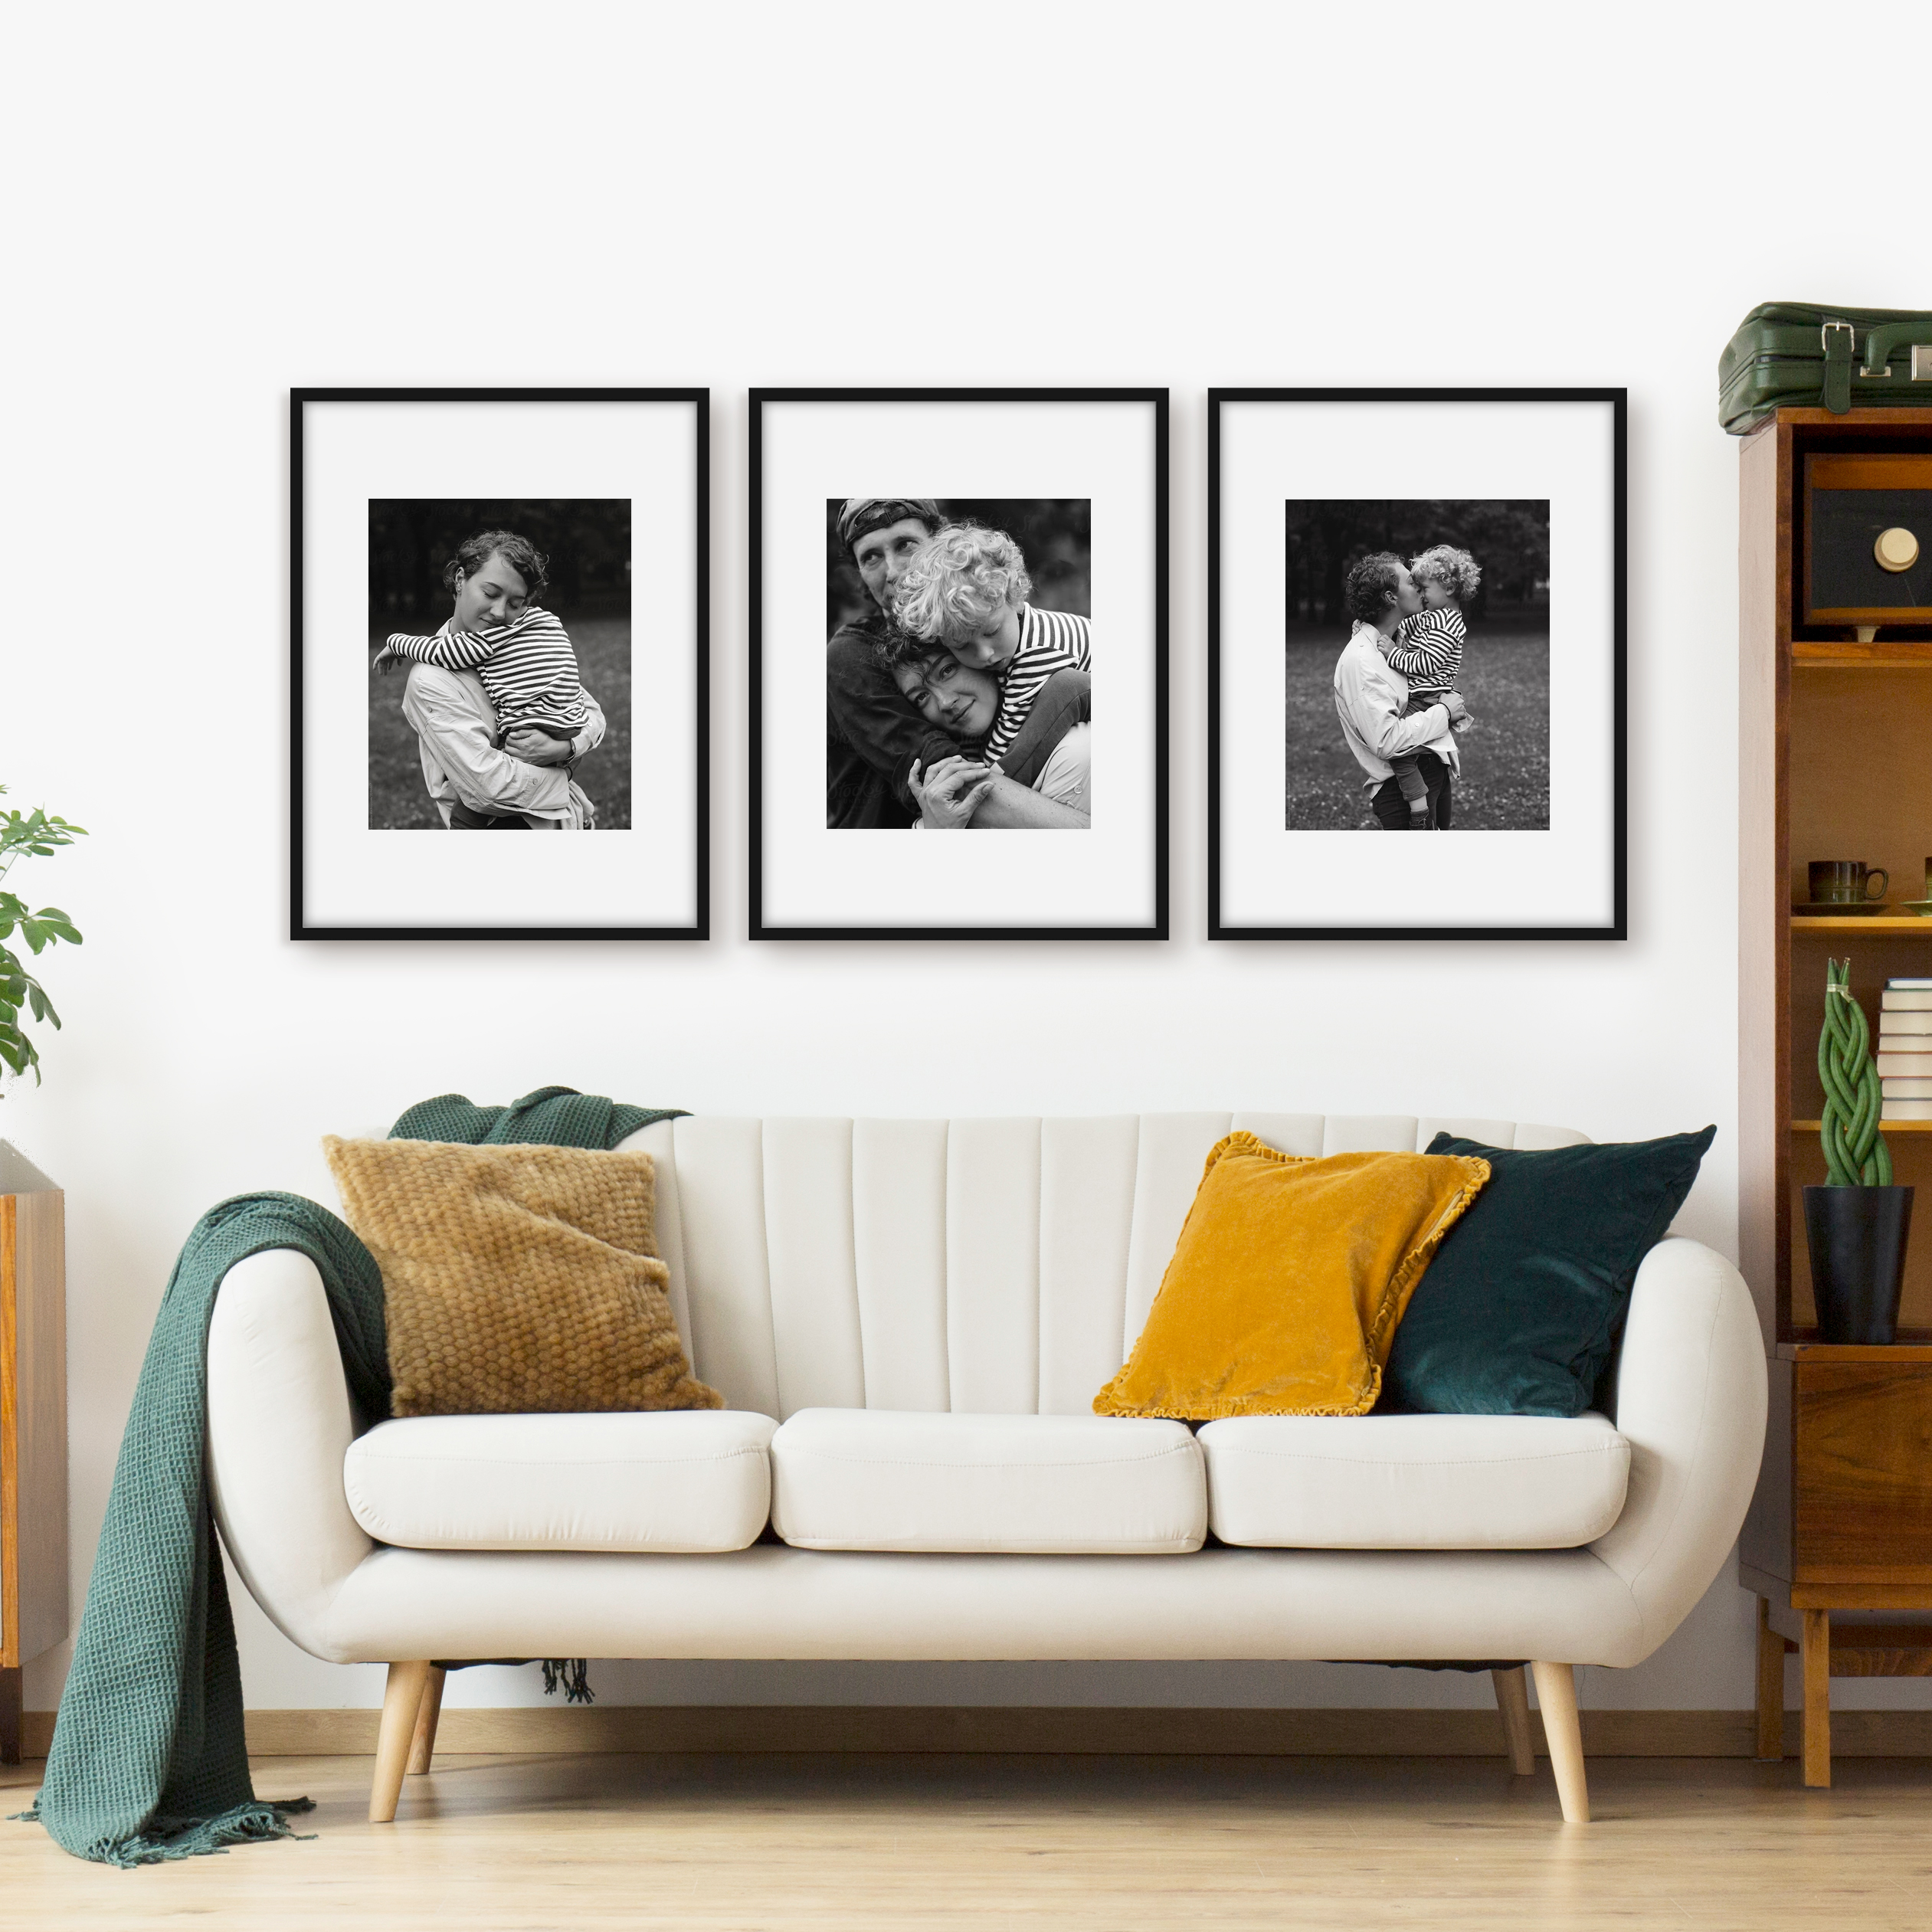 Triptych Upright Three frame layout framed photo series